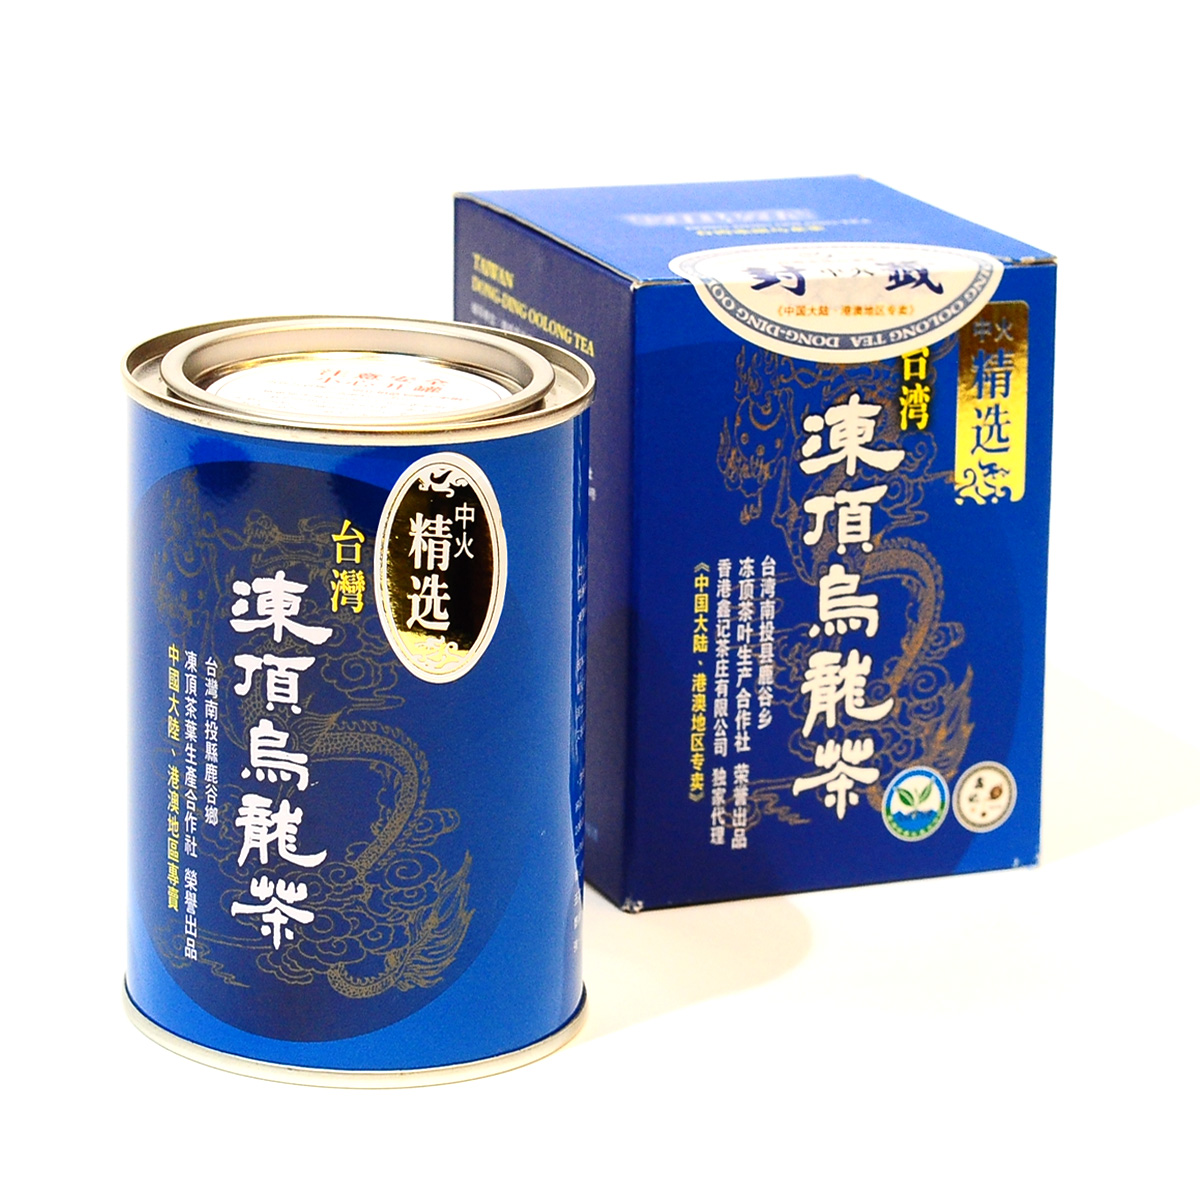 Xin Ji Taiwan High Mountain Tea Frozen Top Oolong Tea Featured 100g&times Box